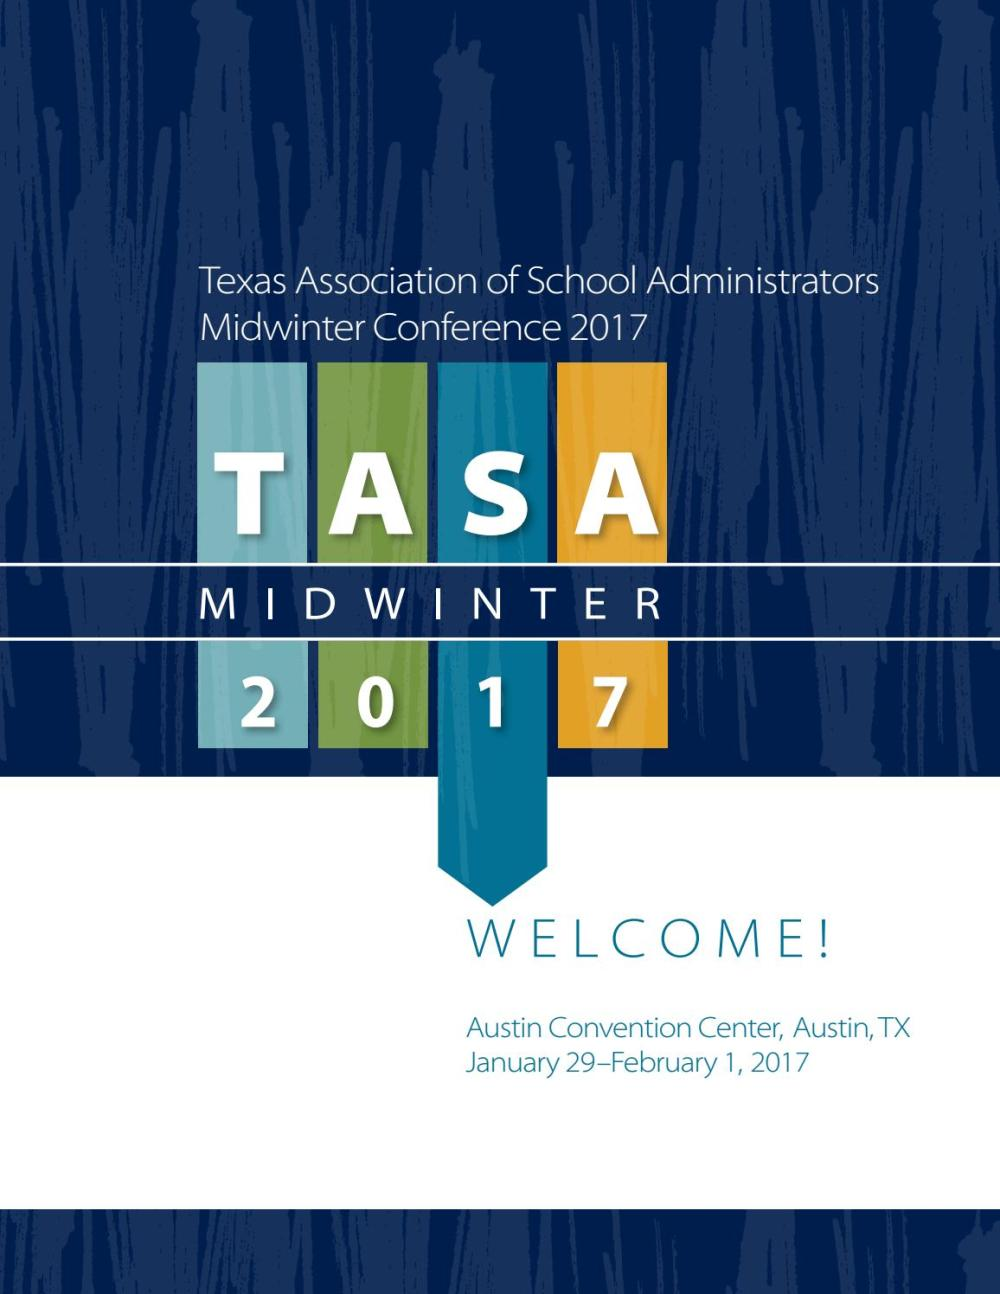 medium resolution of 2017 midwinter conference program by texas association of school administrators issuu